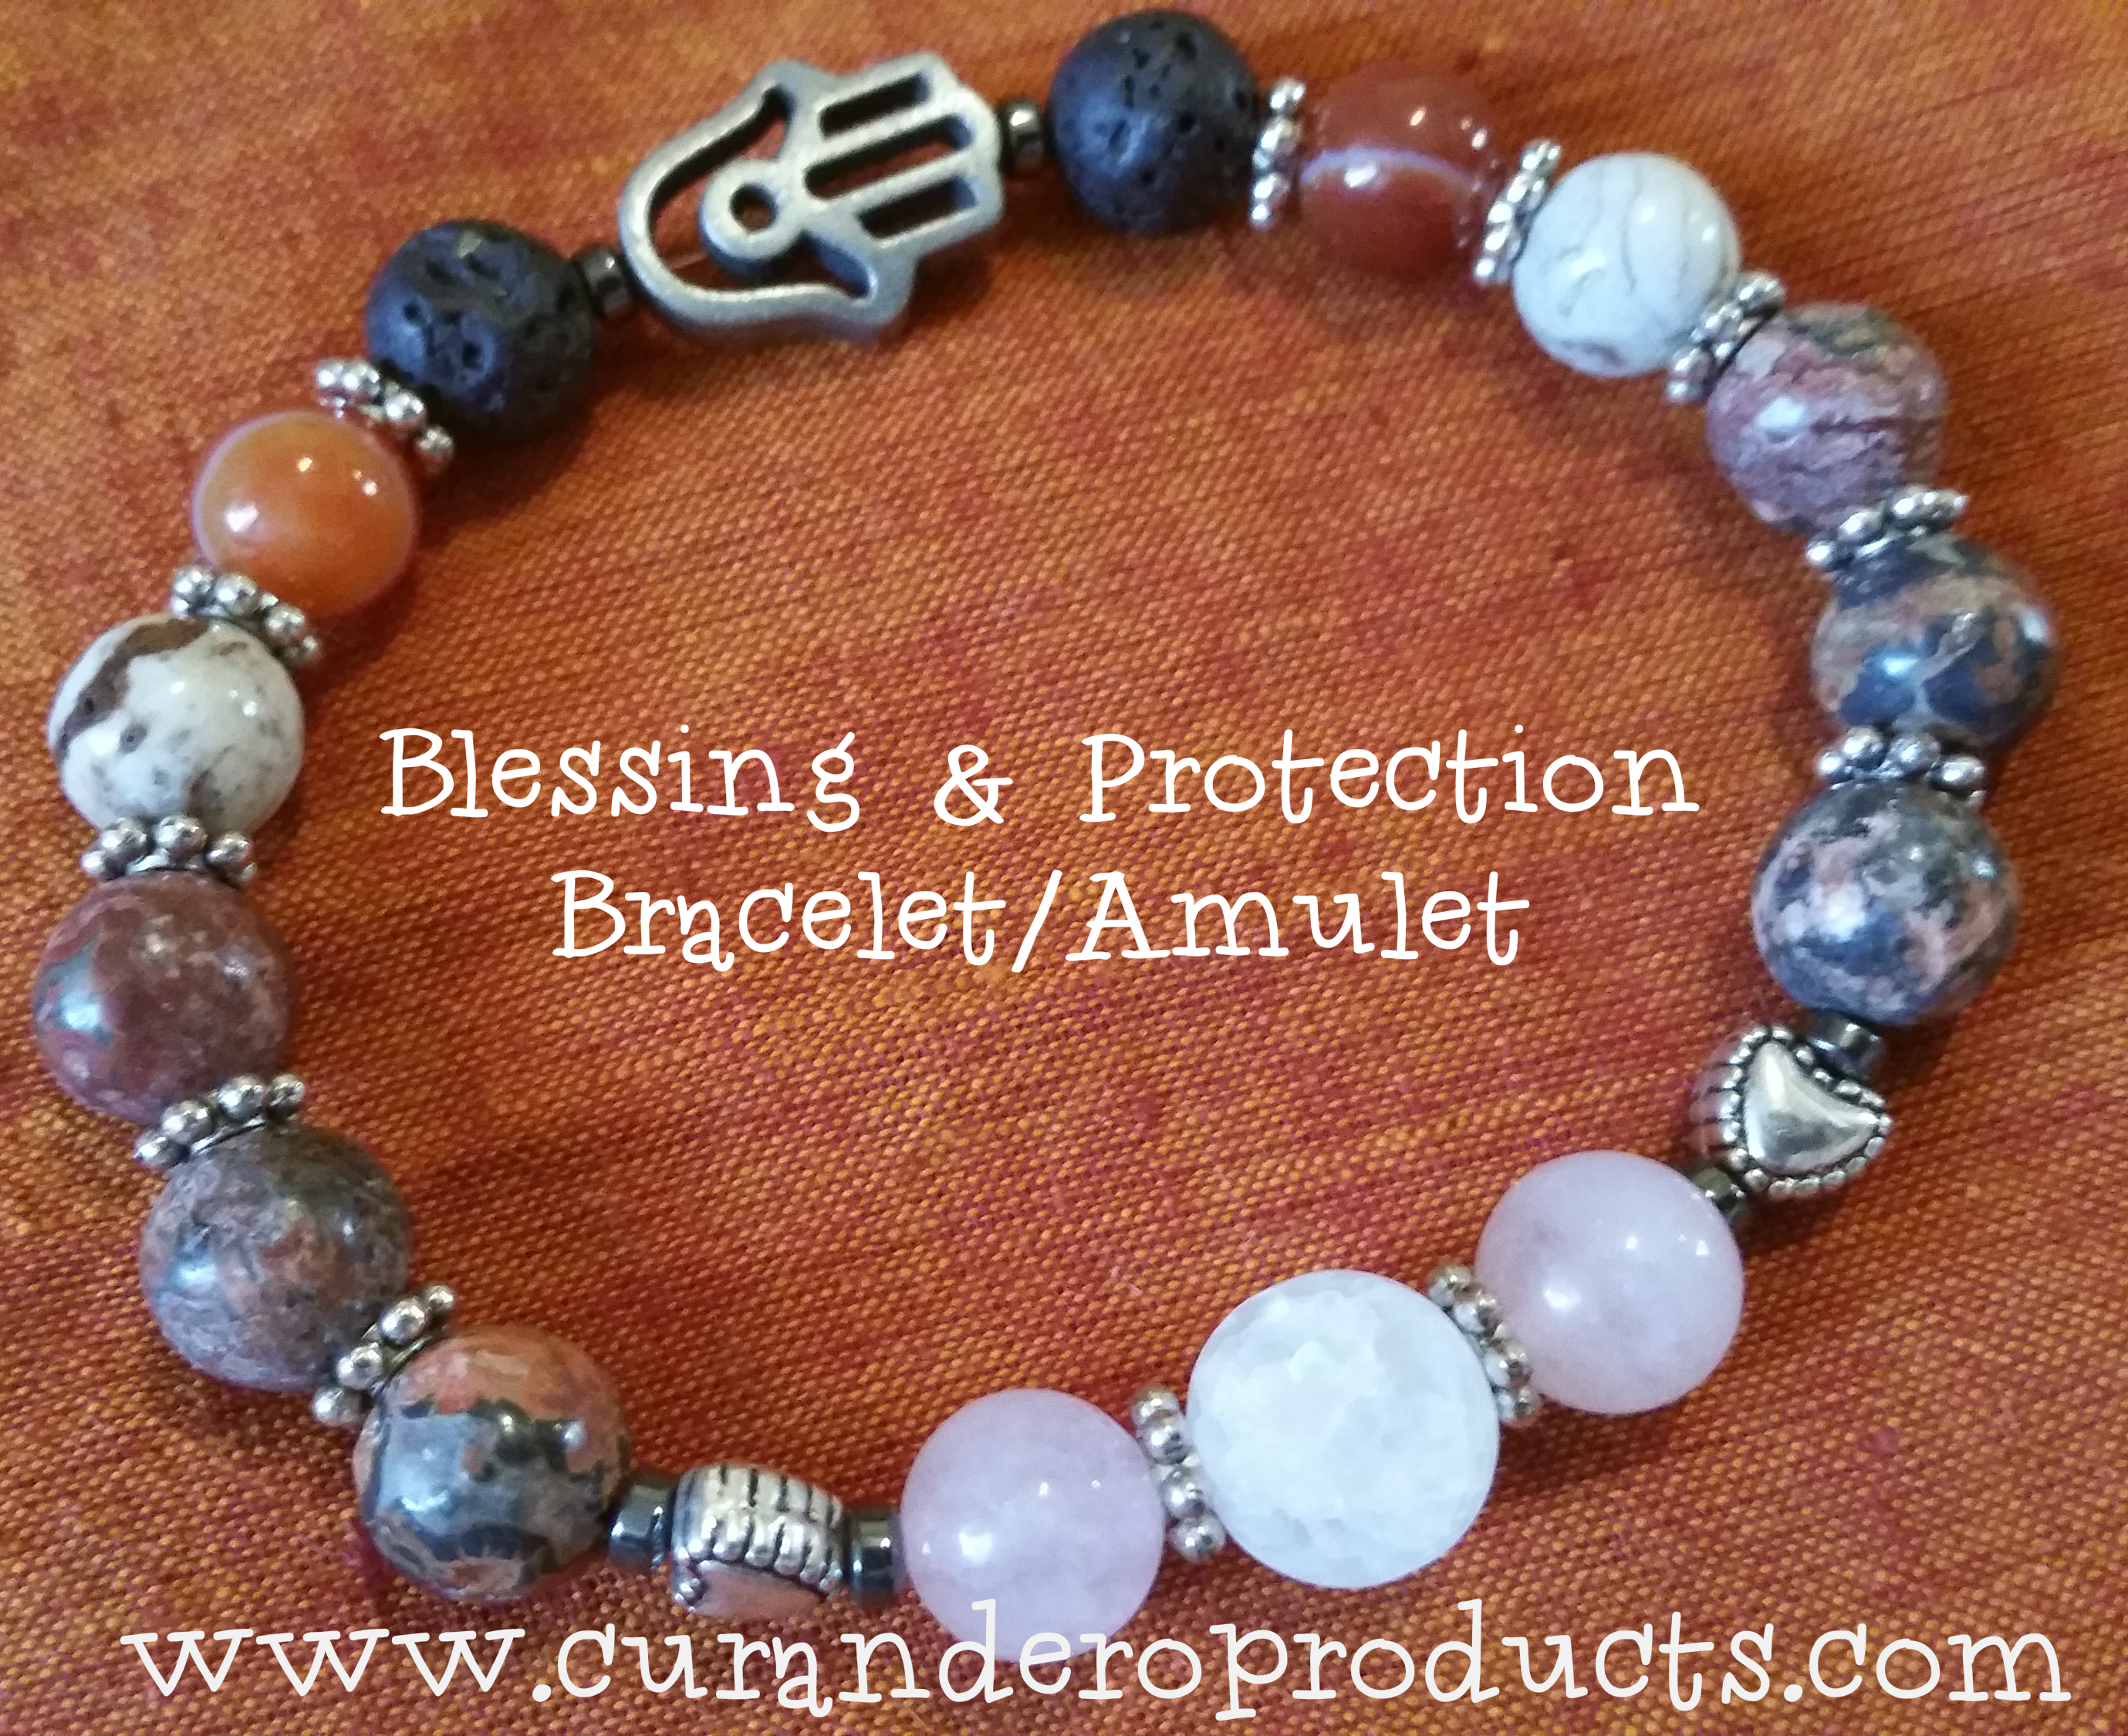 Blessing & Protection Bracelet-Amulet